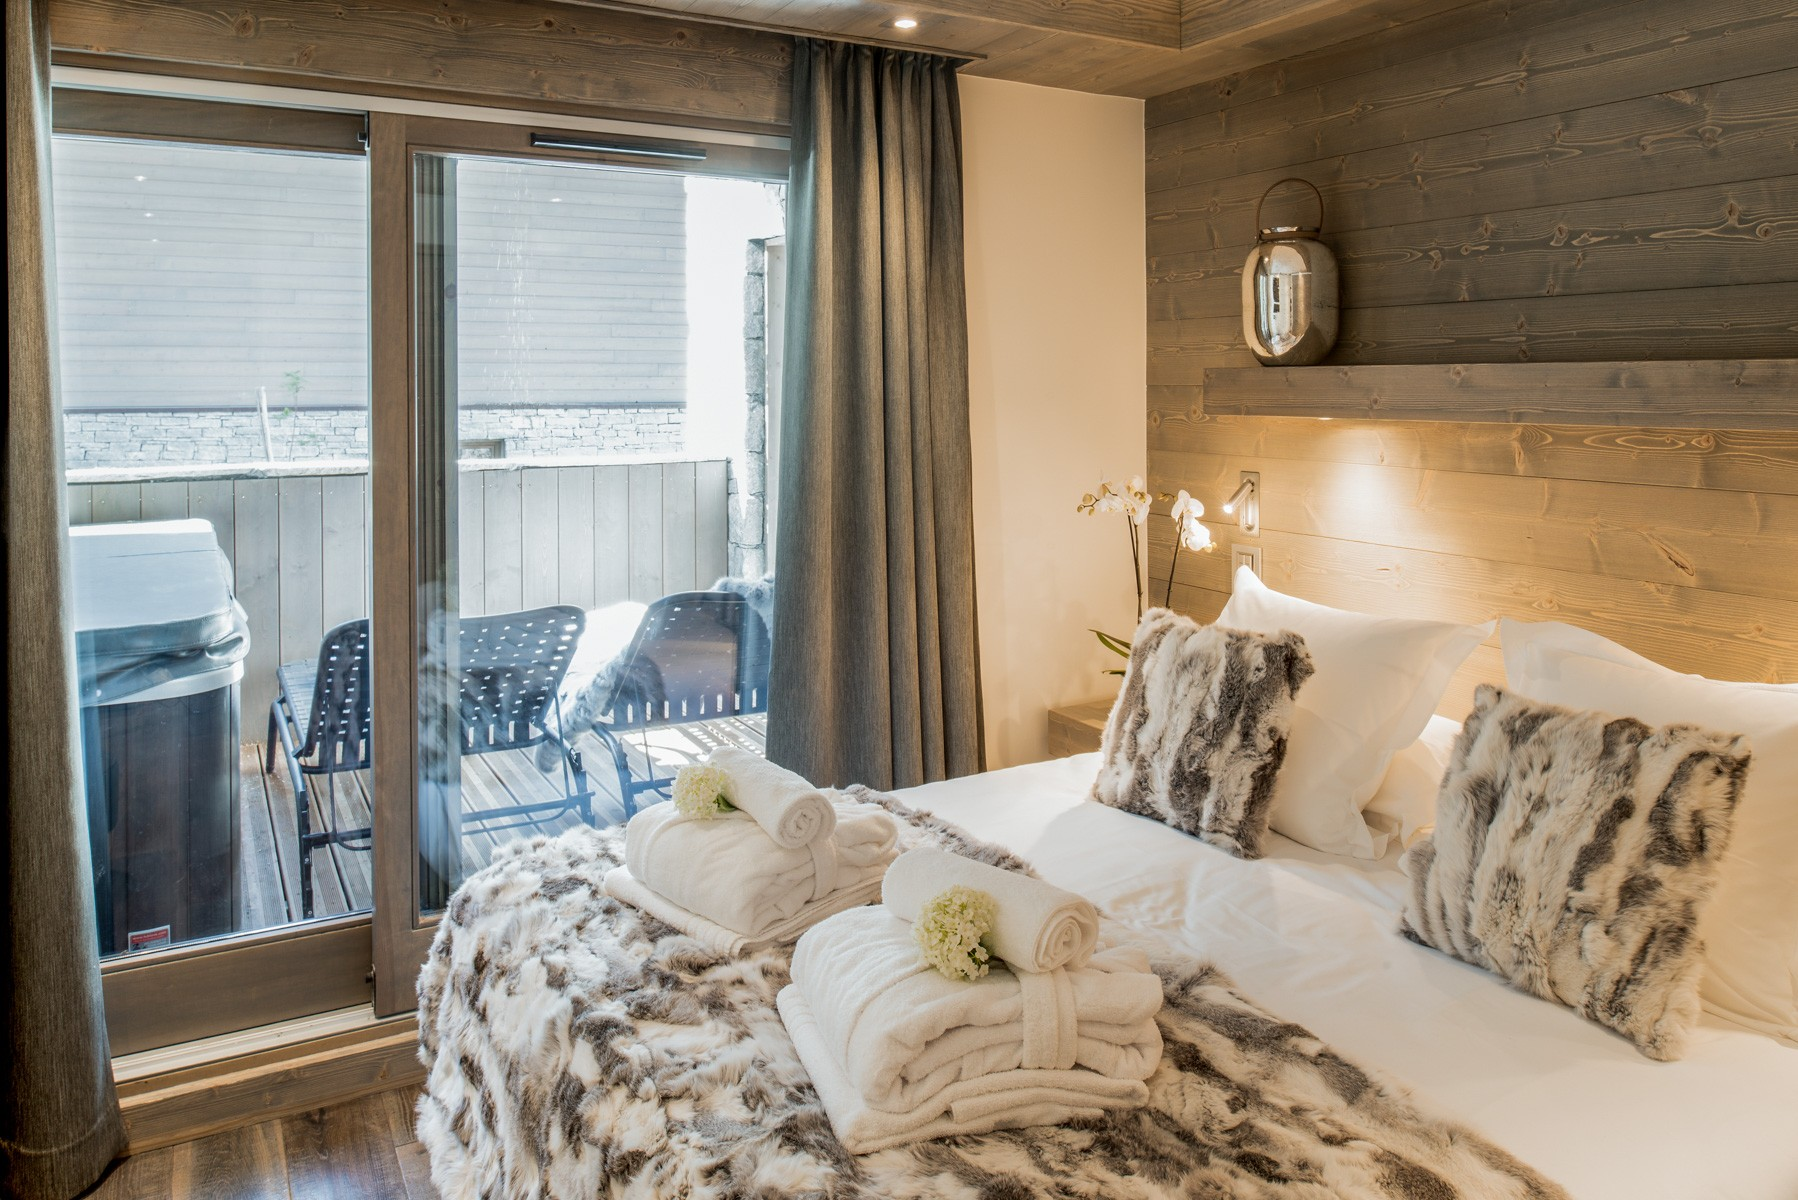 Courchevel 1650 Location Appartement Luxe Amurile Chambre 3